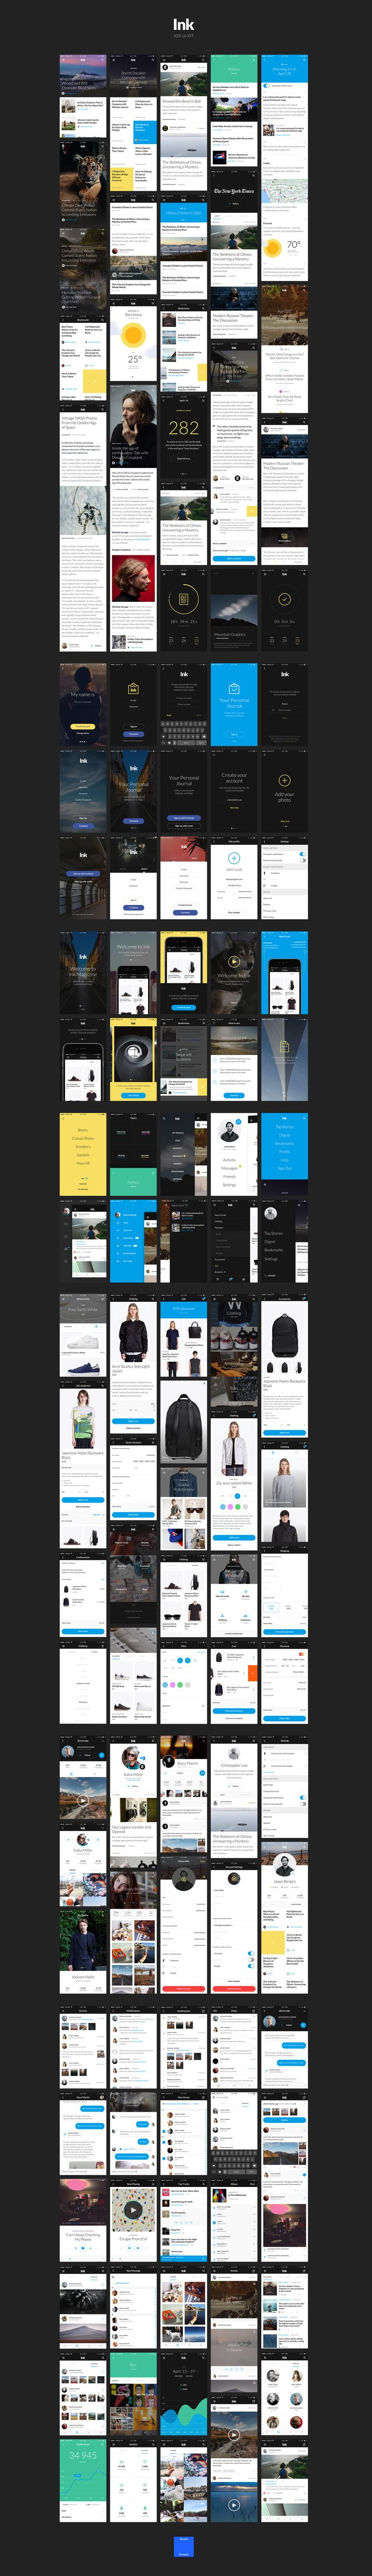 Ink UI Kit - 150 iOS screens - Web Elements - 6